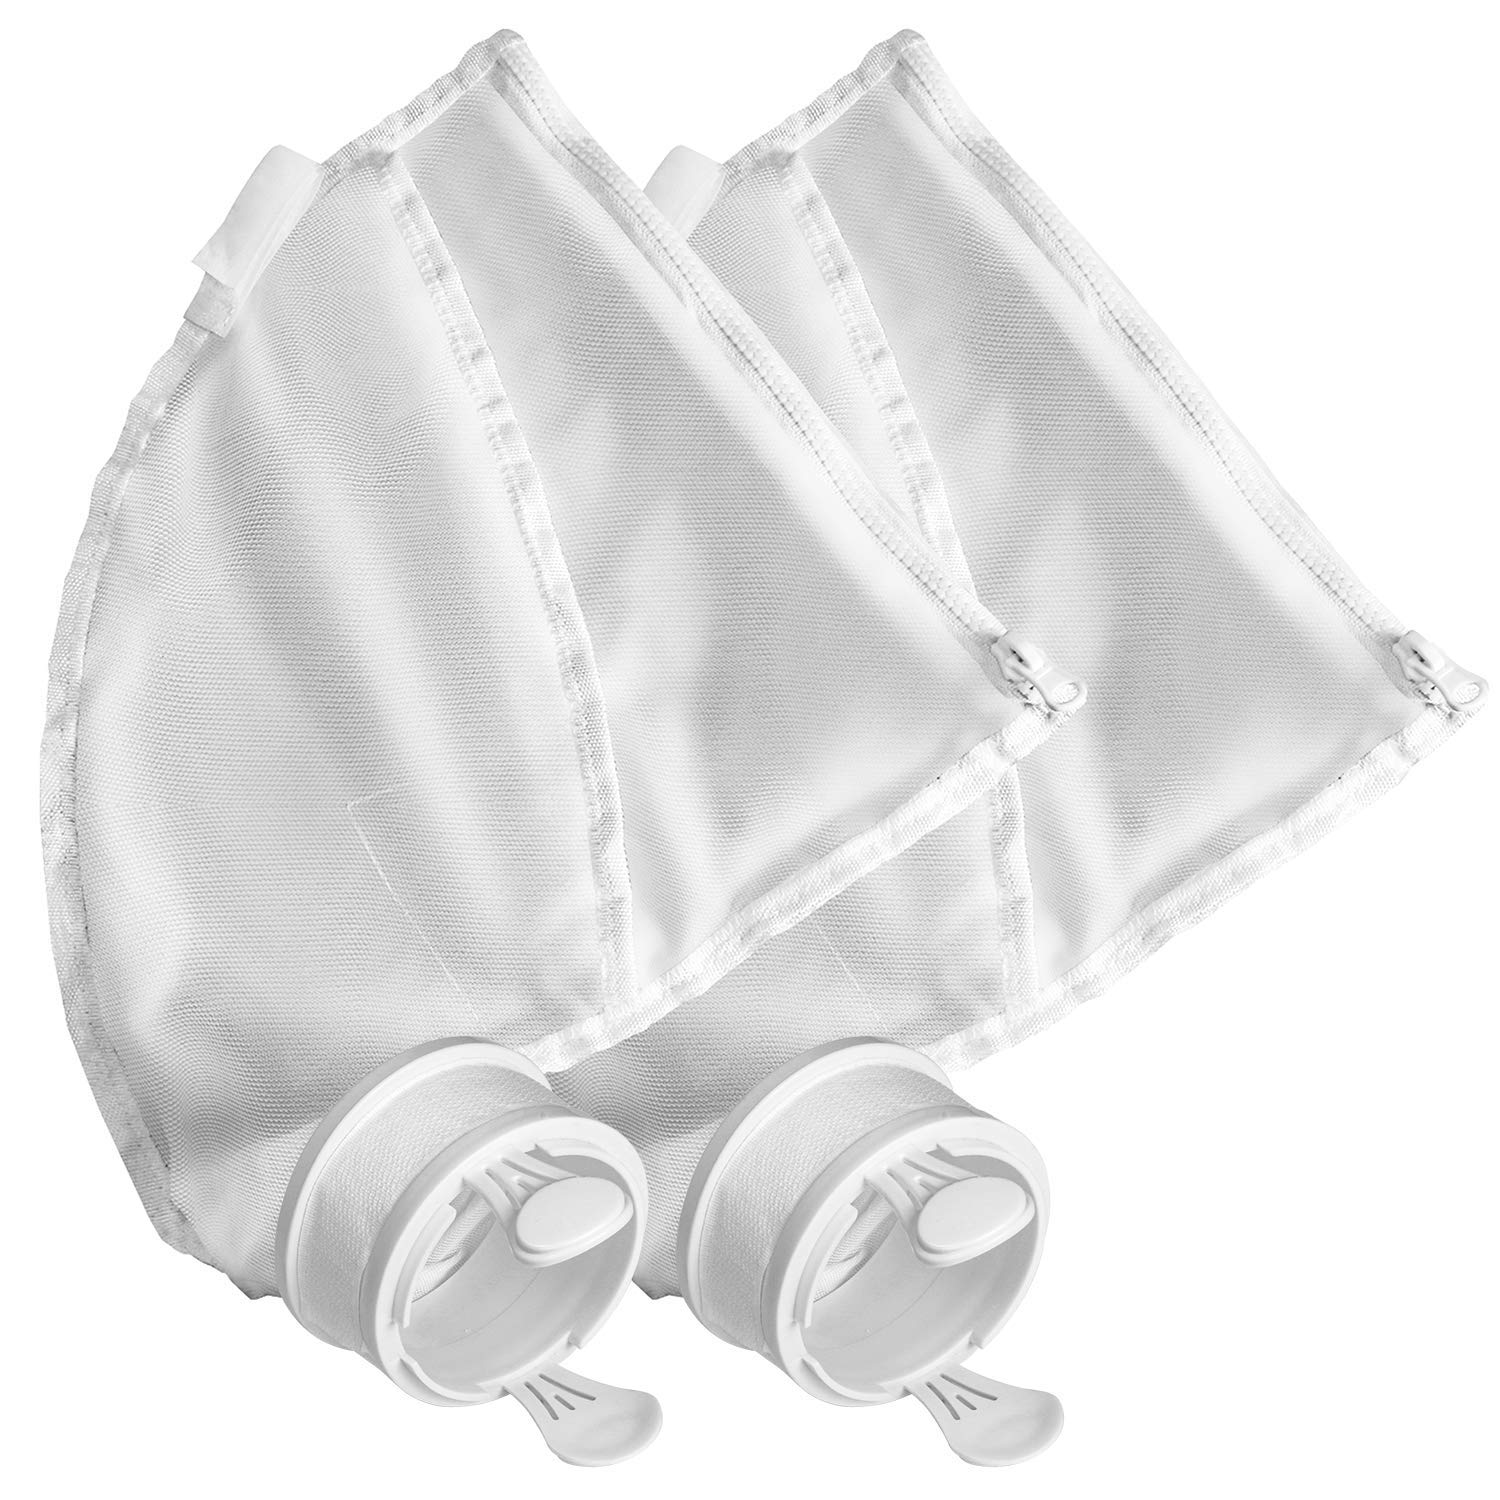 SuMile 2 Pack All Purpose Bags for Polaris 280, 480 Pool Cleaner Replacement Bags Filters Nylon Mesh Zipper Bags K13 K16 Vac-Sweep Replacement Parts, White